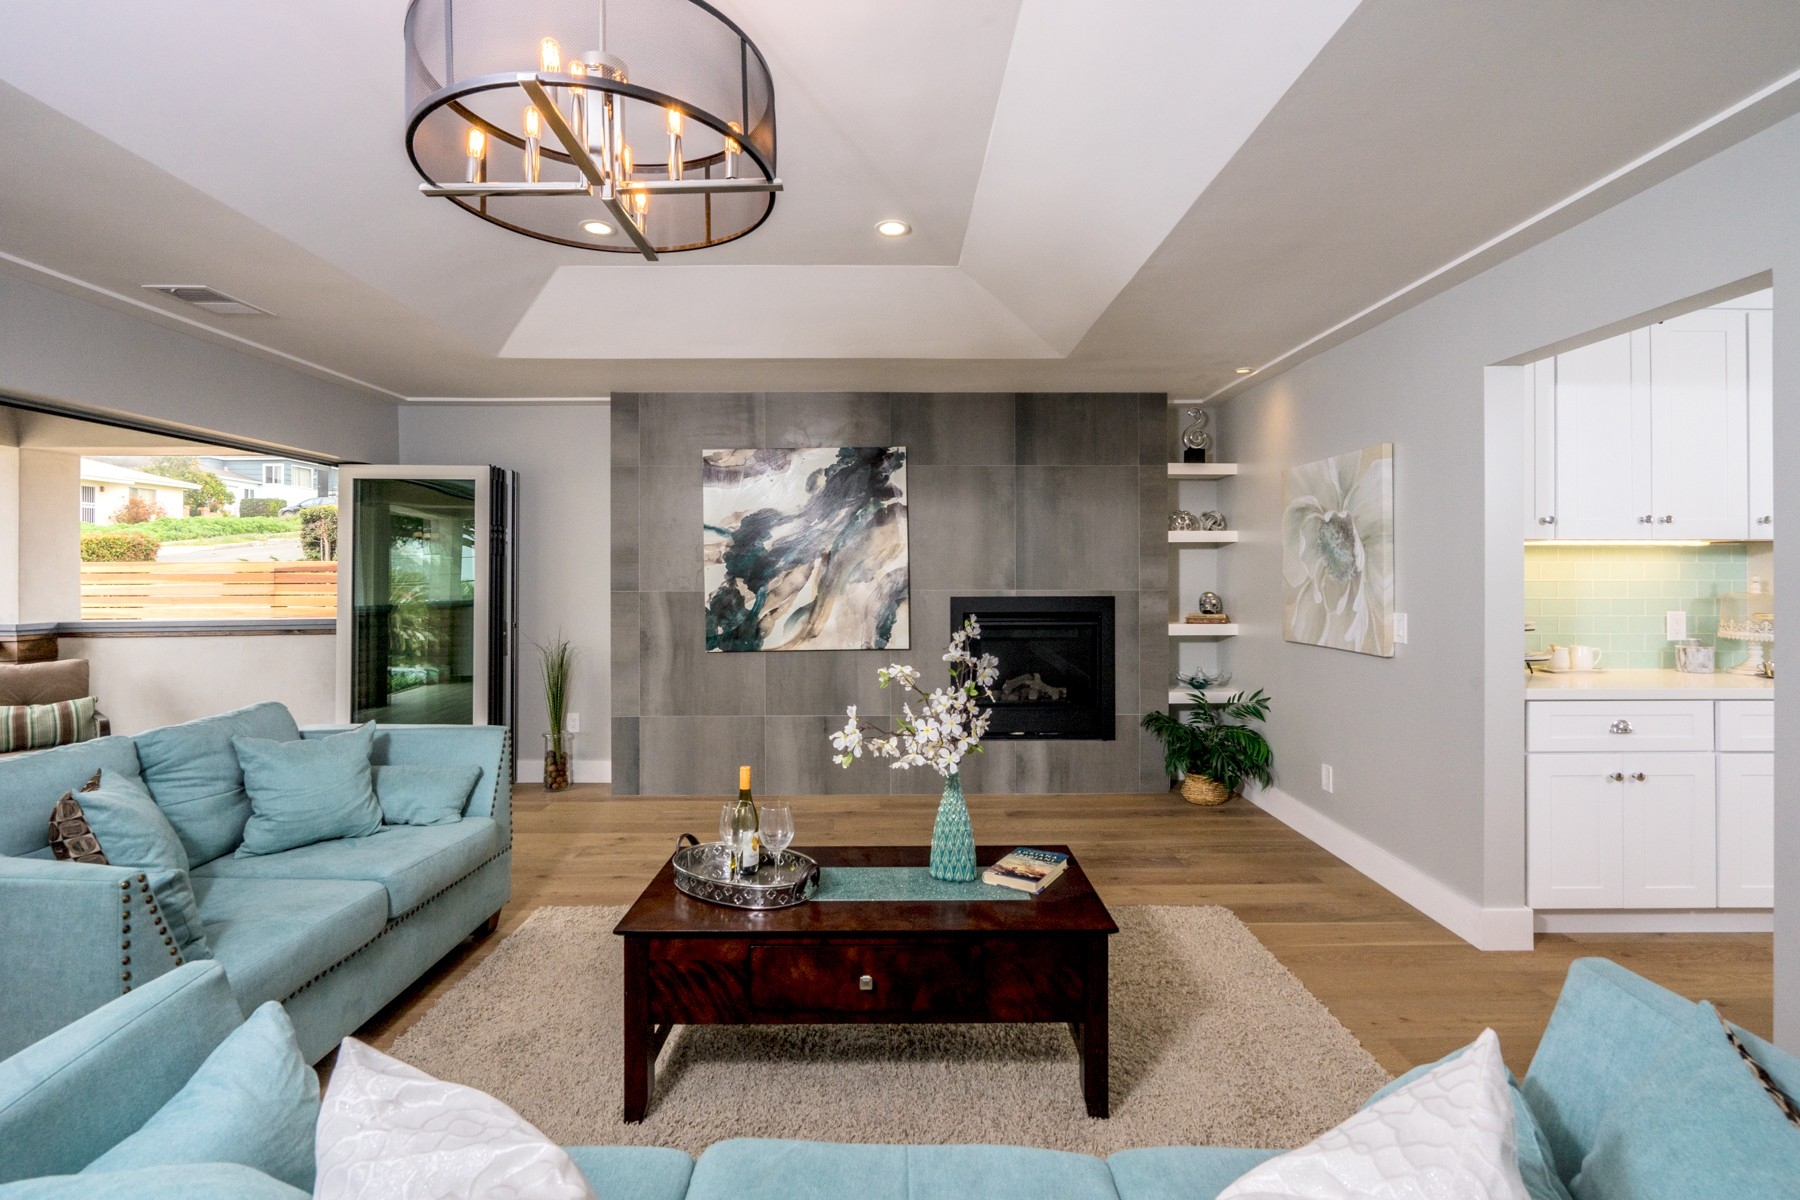 Single Family Home for Sale at 4483 Adair Street Sunset Cliffs, San Diego, California, 92107 United States